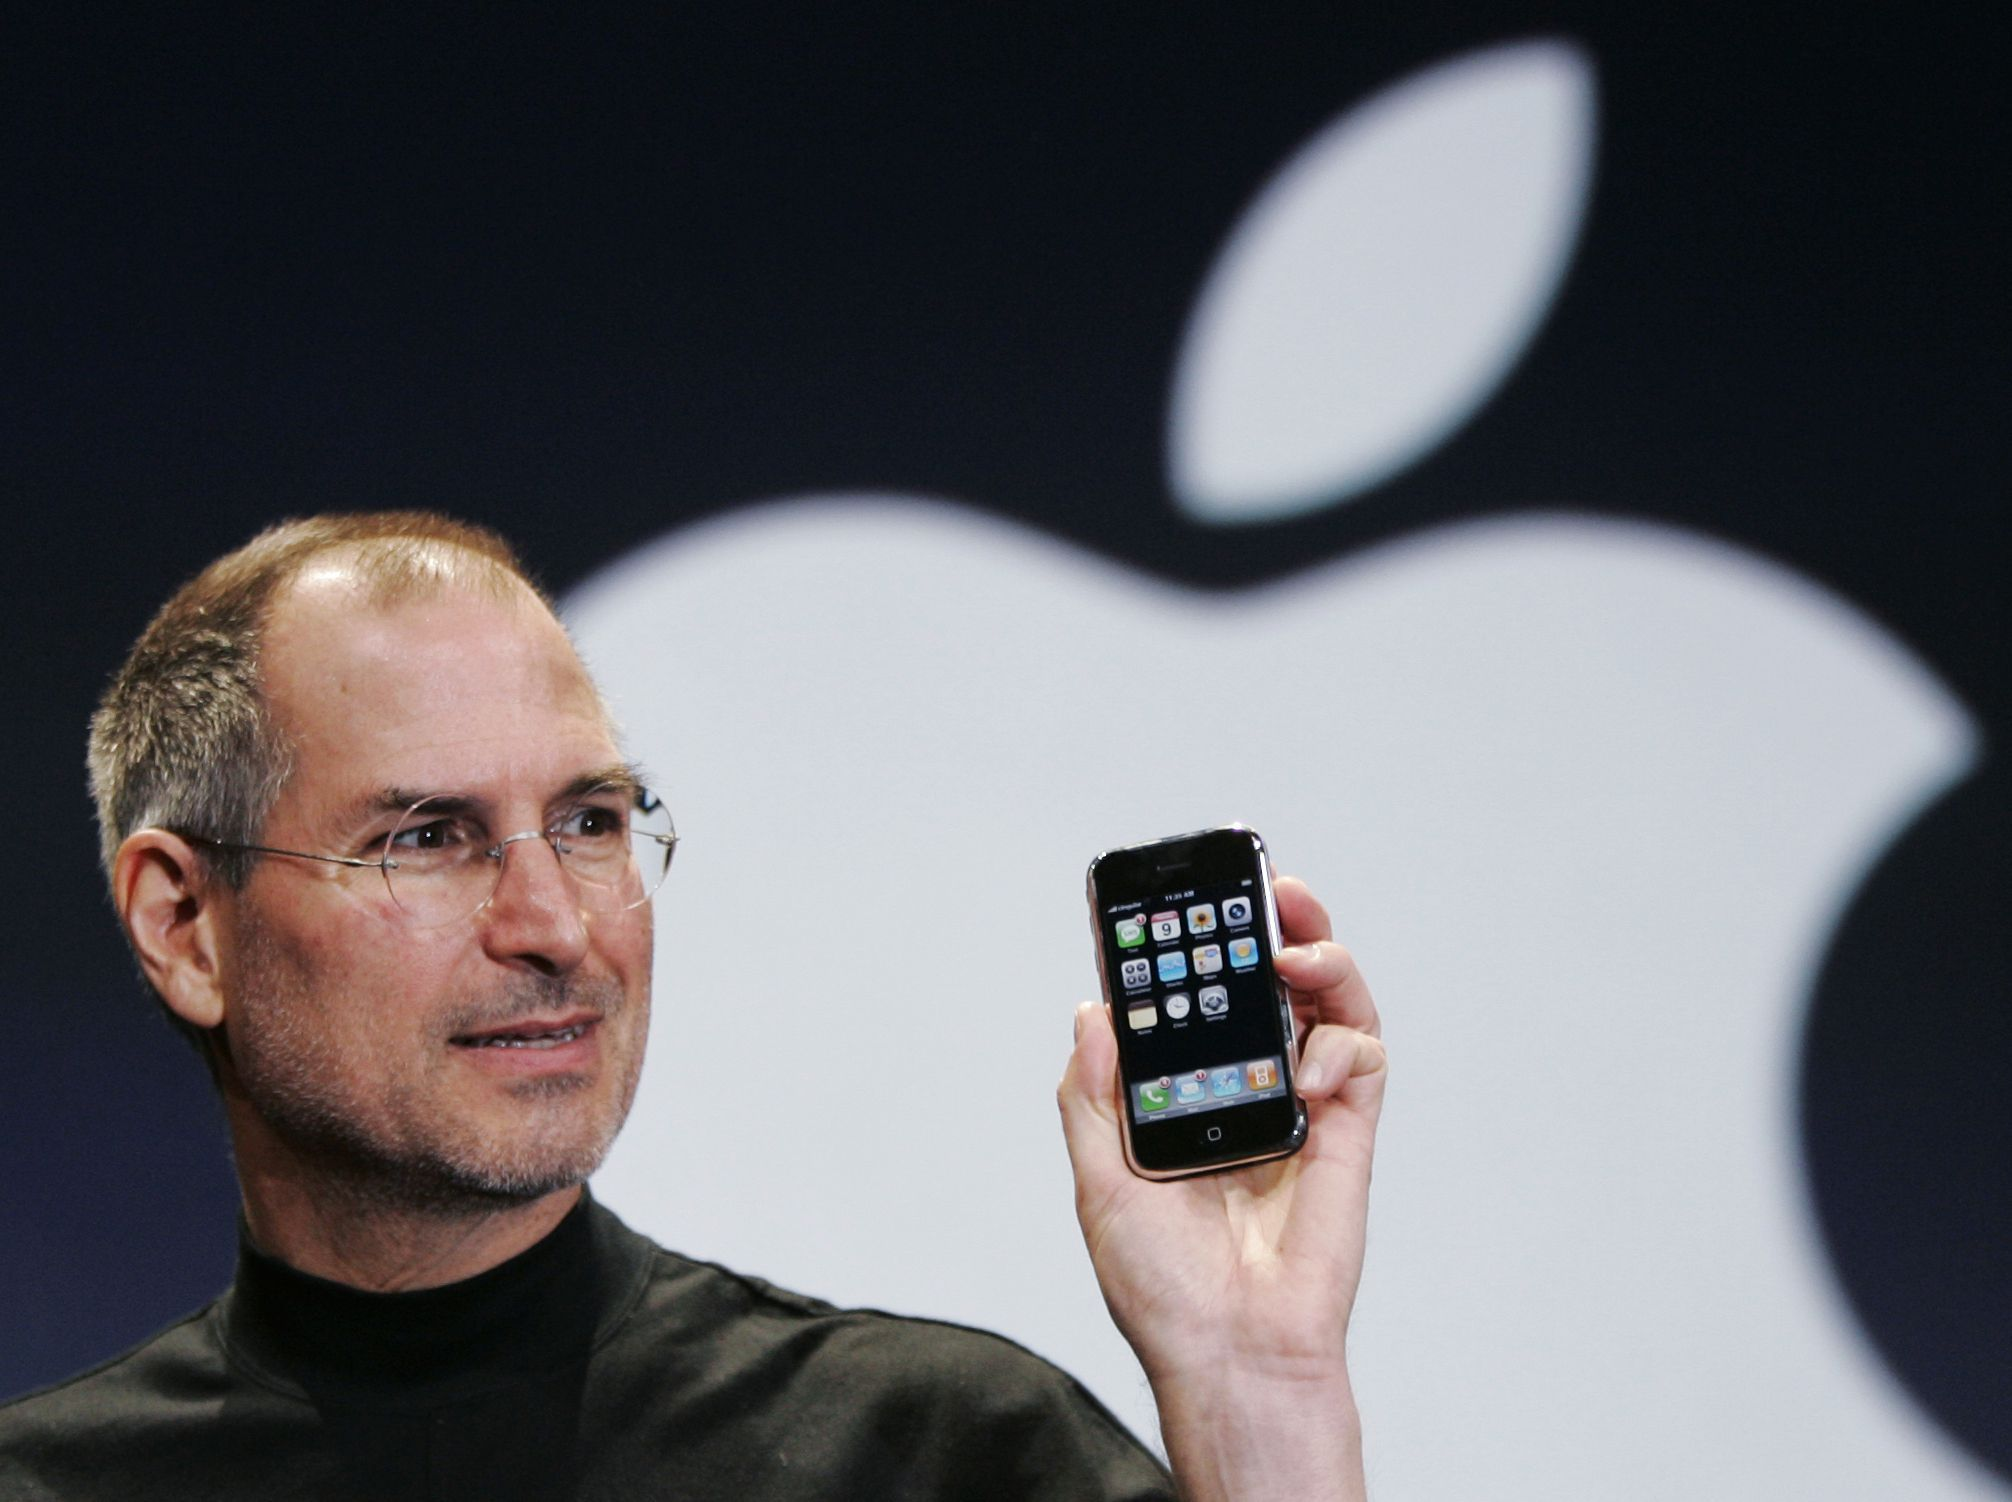 Apple proved a phone can change the world in just 10 years